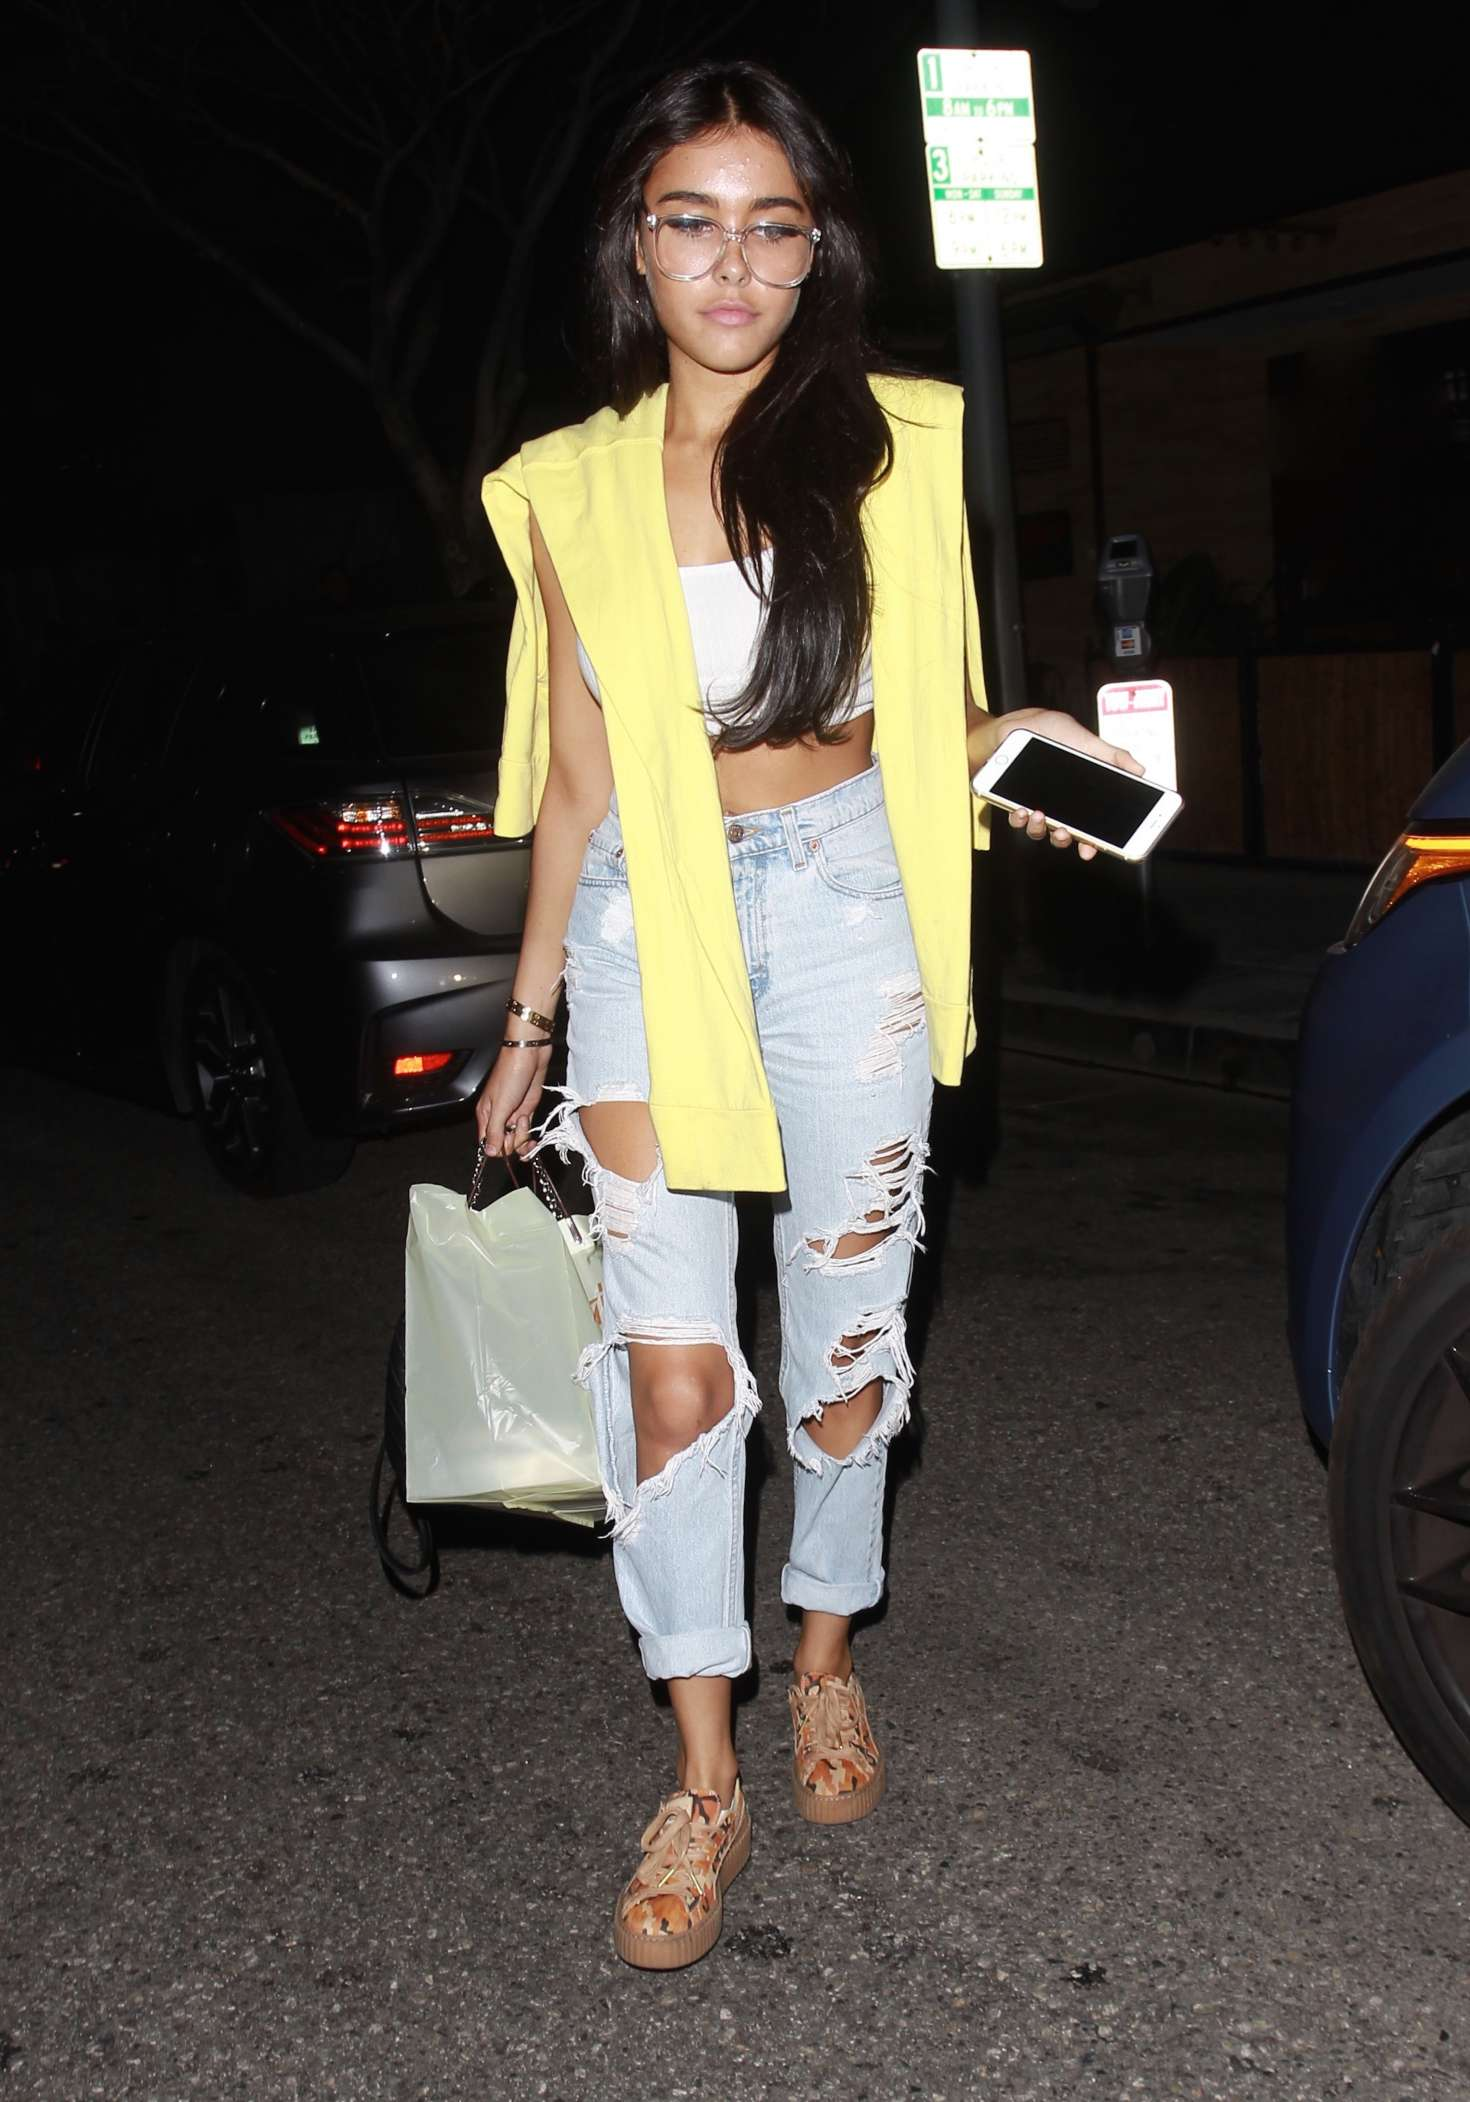 Madison Beer at 'Il Pastaio' Restaurant in Beverly Hills